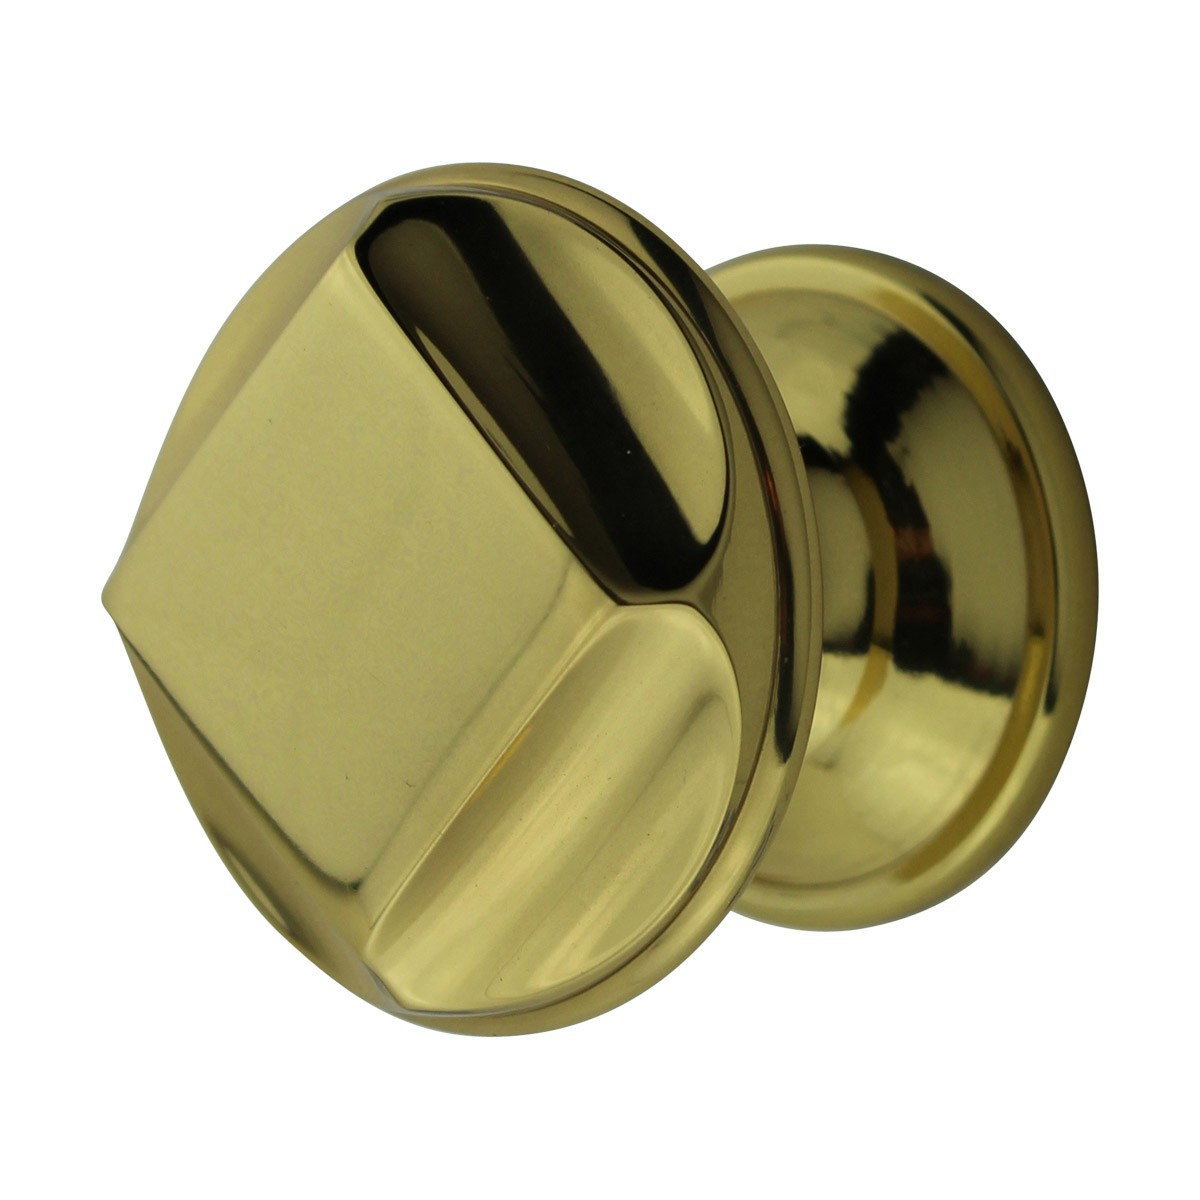 Cabinet Knob Bright Solid Brass 1 14 Dia Modern Kitchen Cabinet Hardware Solid Brass Cabinet Knob Decorative Dresser Cabinet Knob